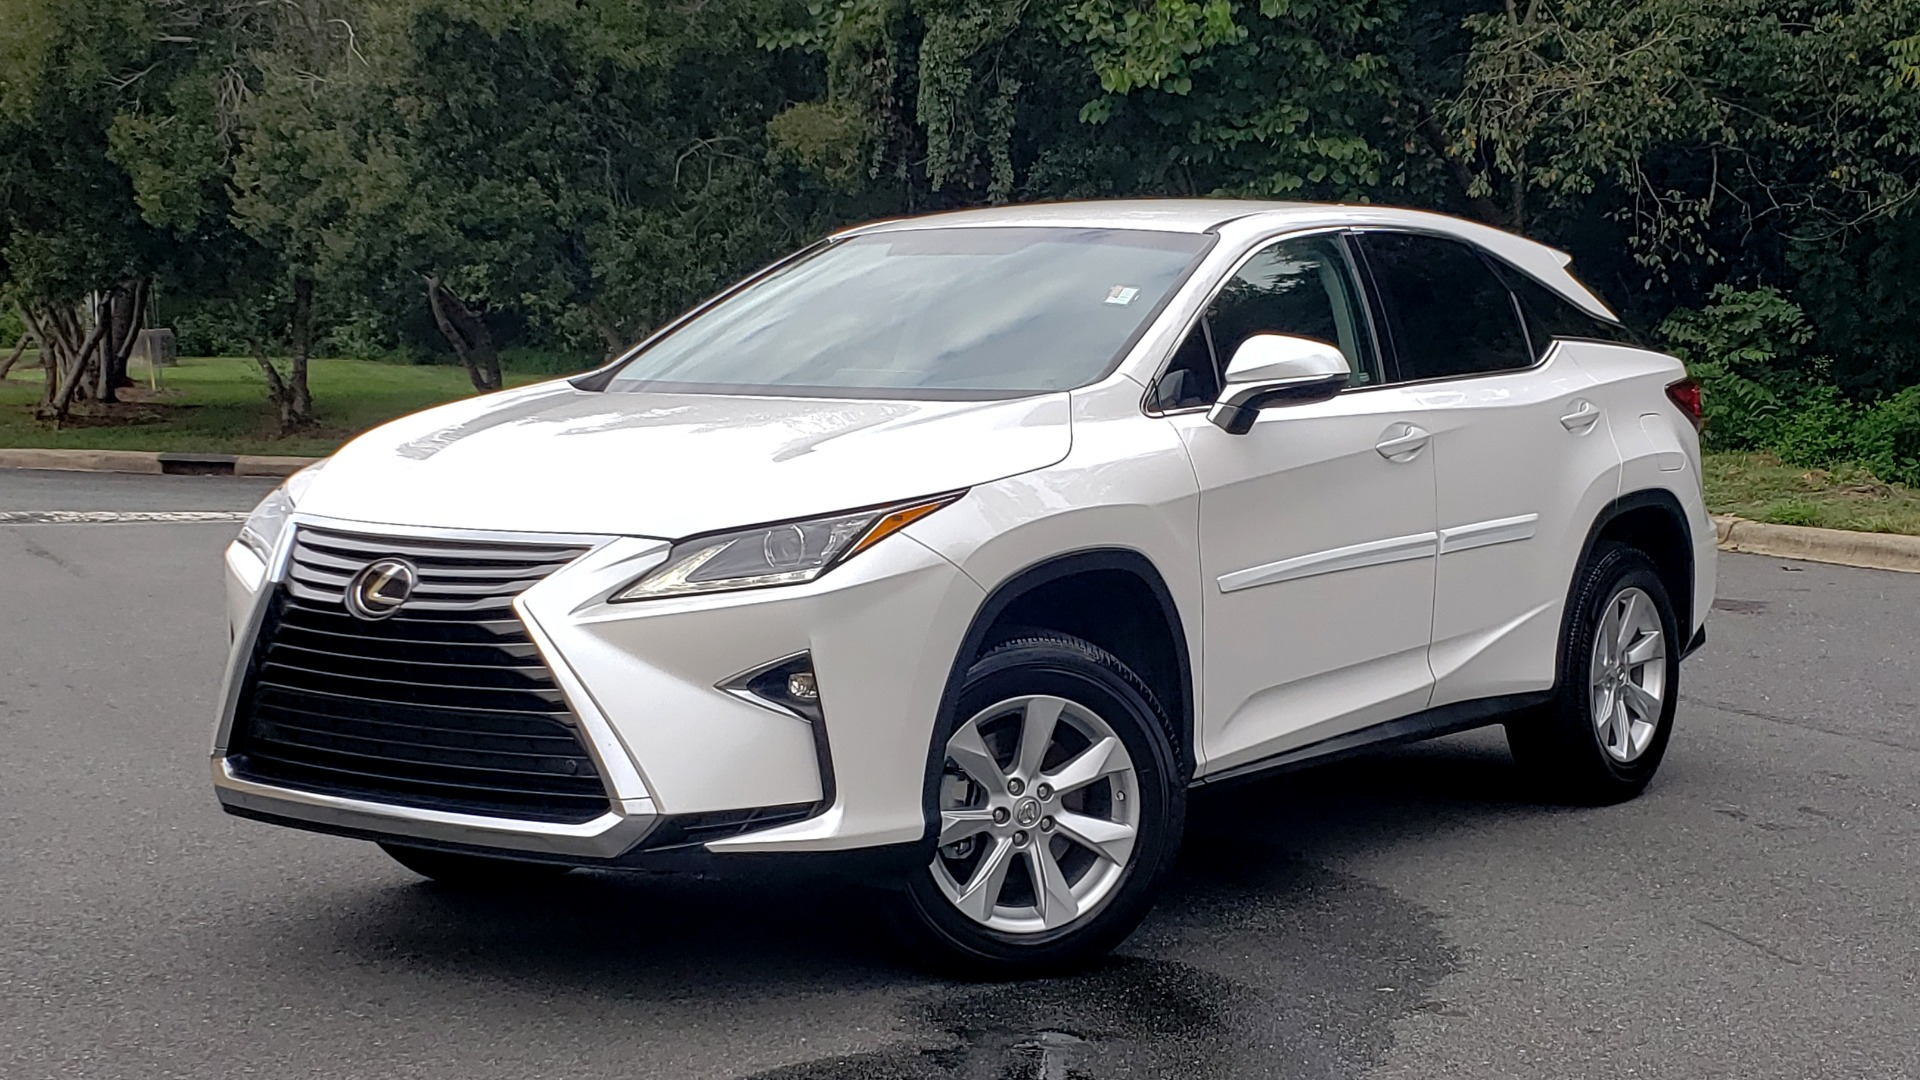 Used 2016 Lexus RX 350 FWD / 4-DR / 3.5L V6 / 8-SPD AUTO / LEATHER / REARVIEW for sale Sold at Formula Imports in Charlotte NC 28227 1